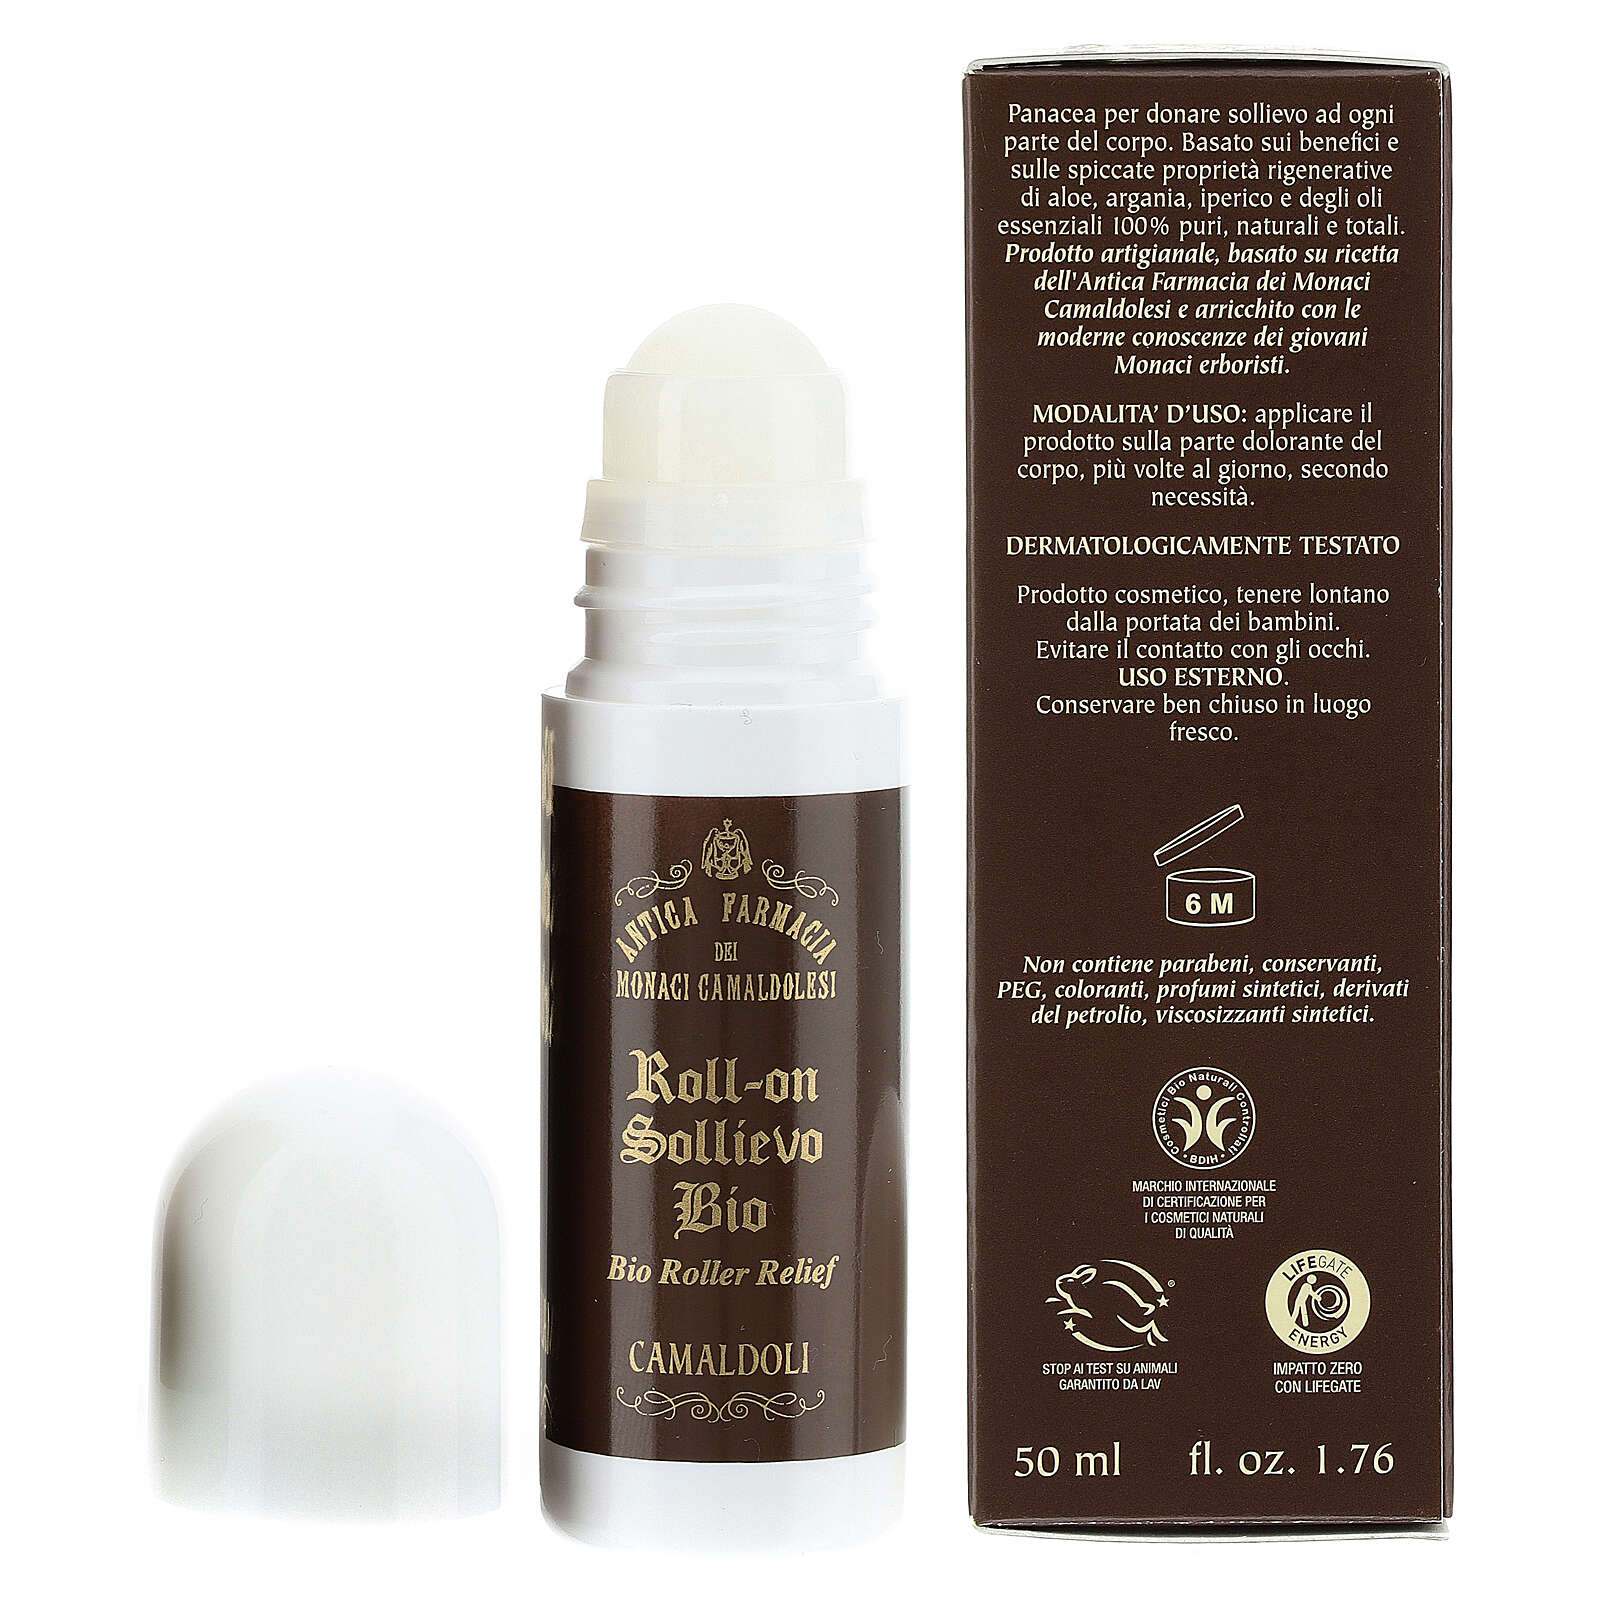 Roll-on sollievo Bio BDIH 50 ml Camaldoli 4